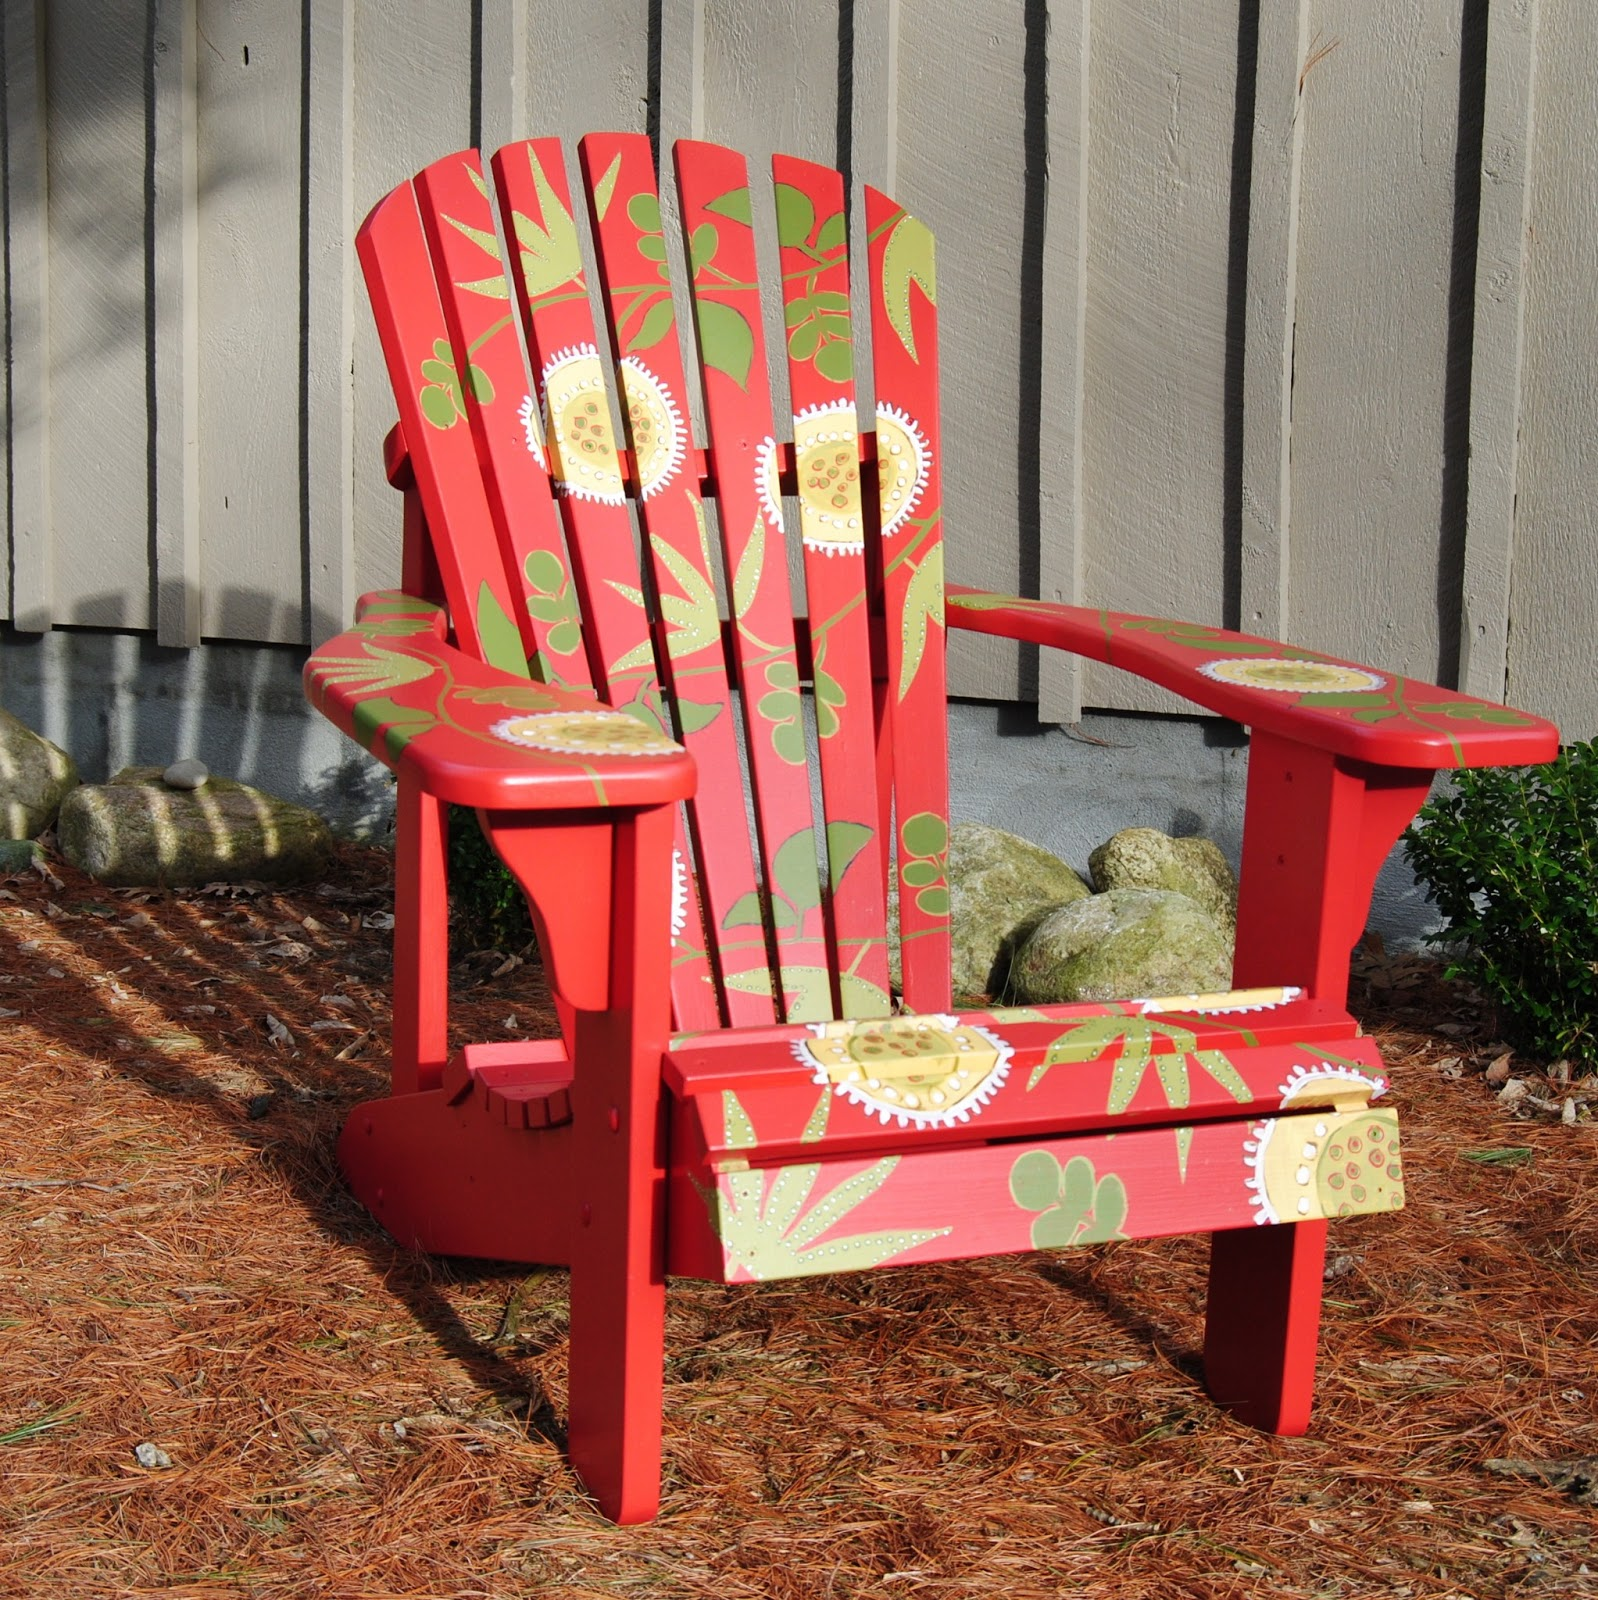 Designed And Painted By Corinne Hodgson